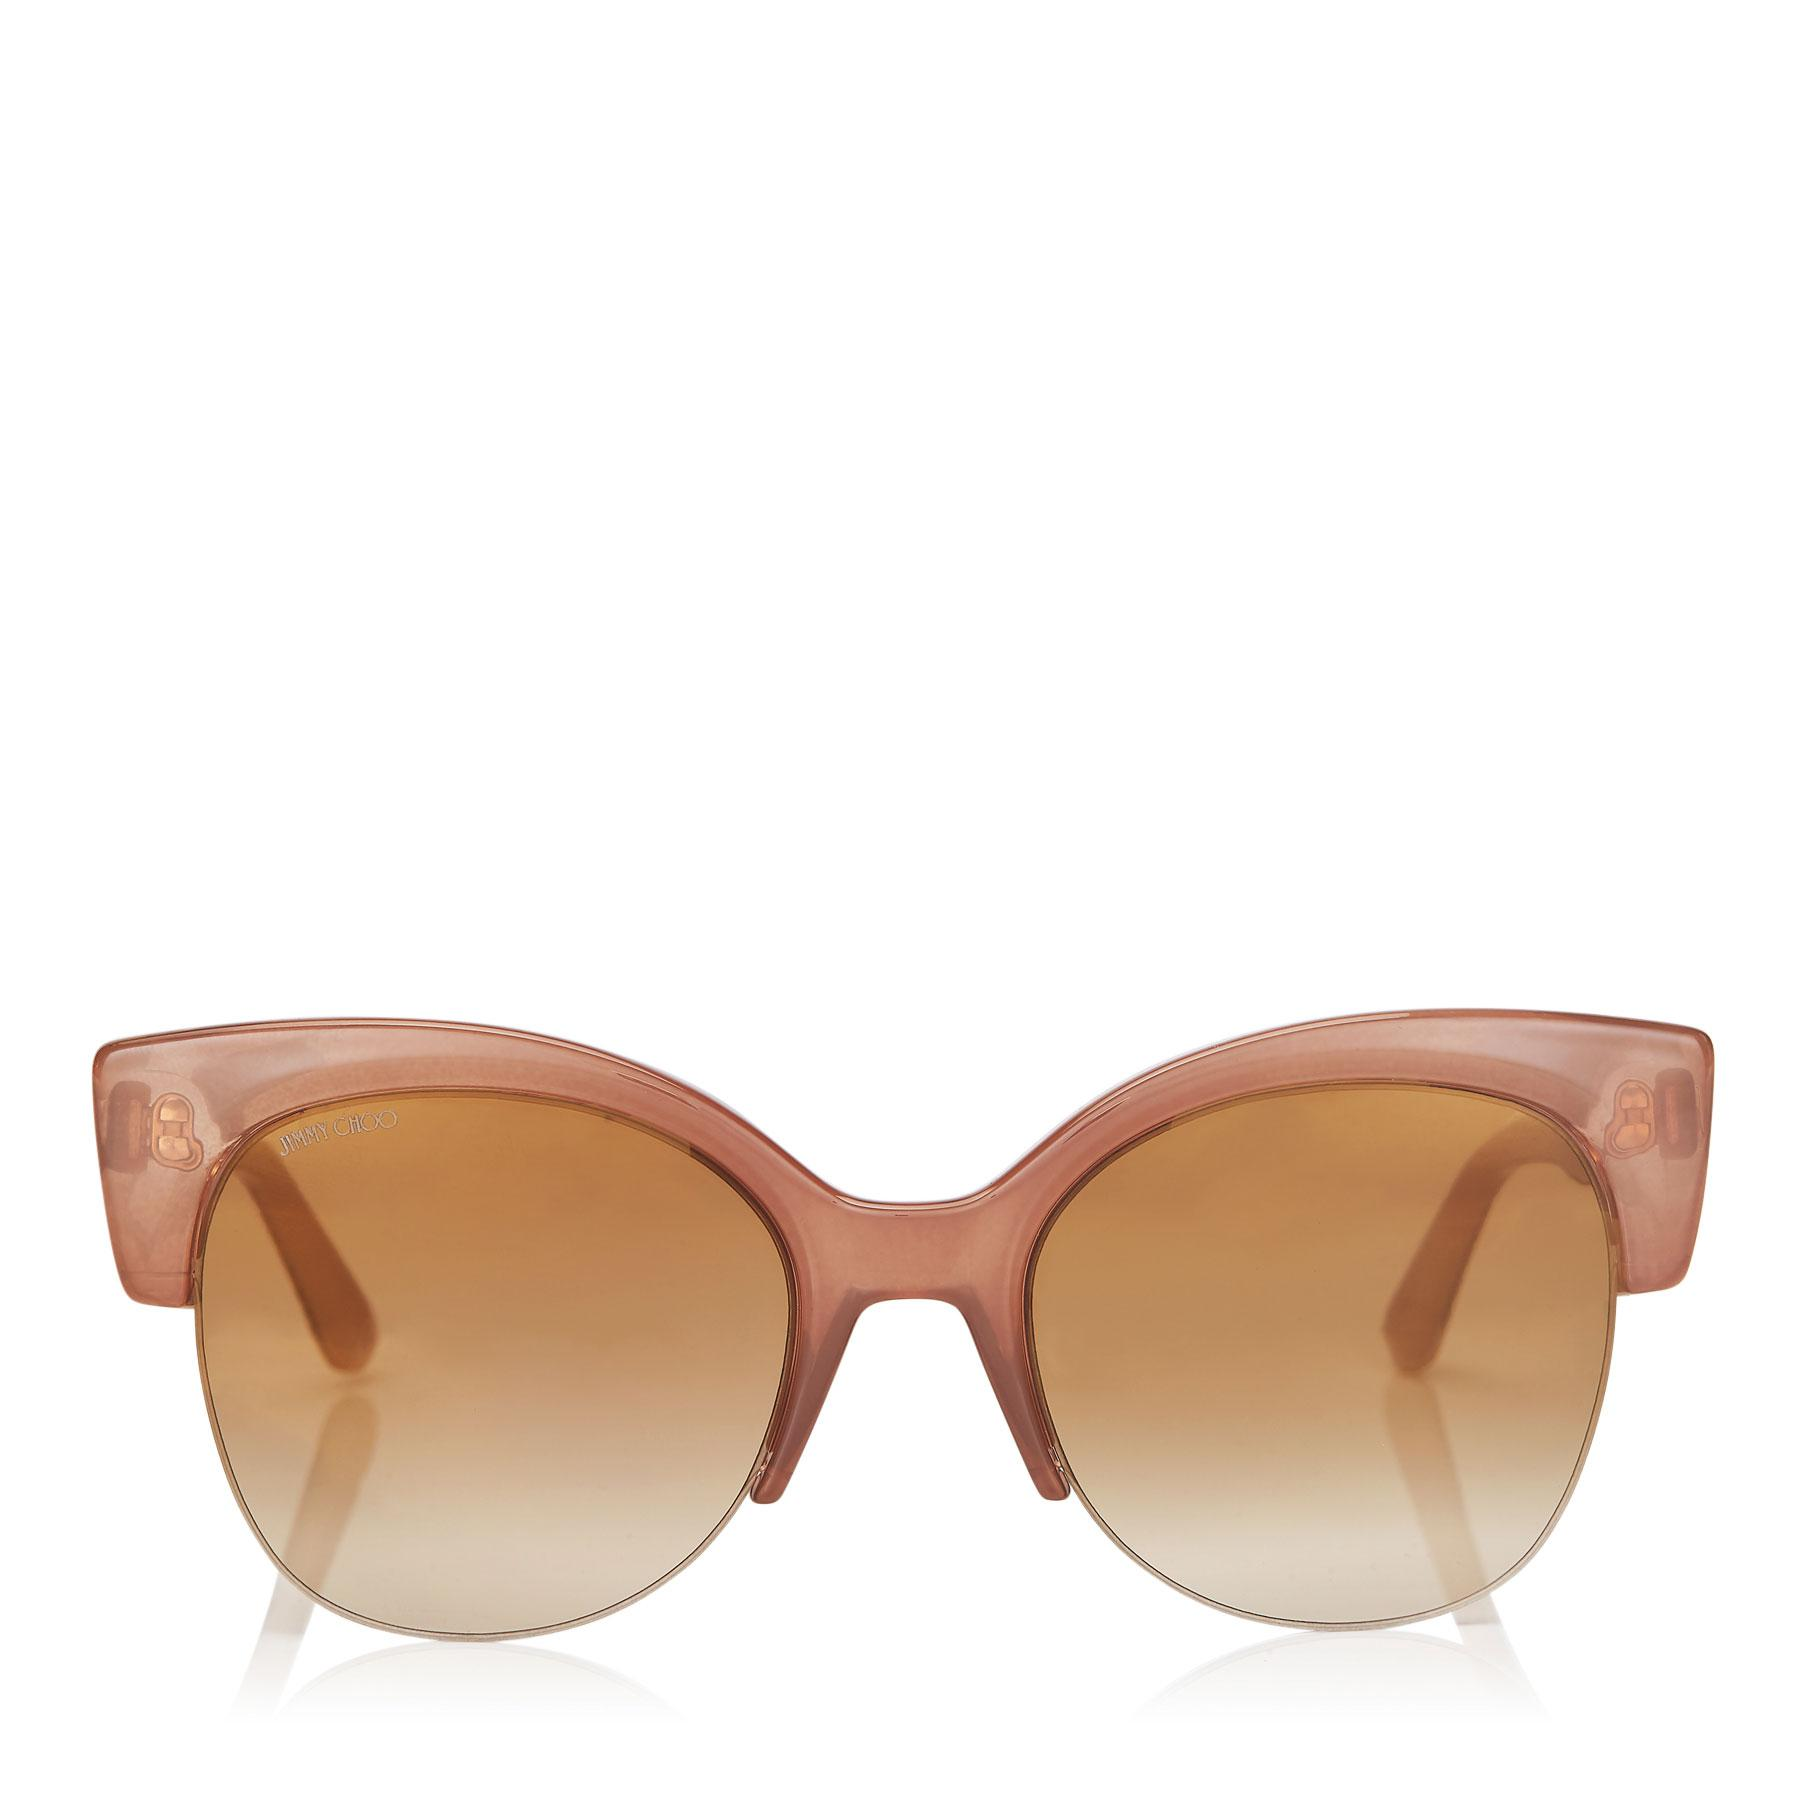 ffa9e1ca08df Jimmy Choo Priya Nude Acetate Oval Frame Sunglasses With Glitter ...